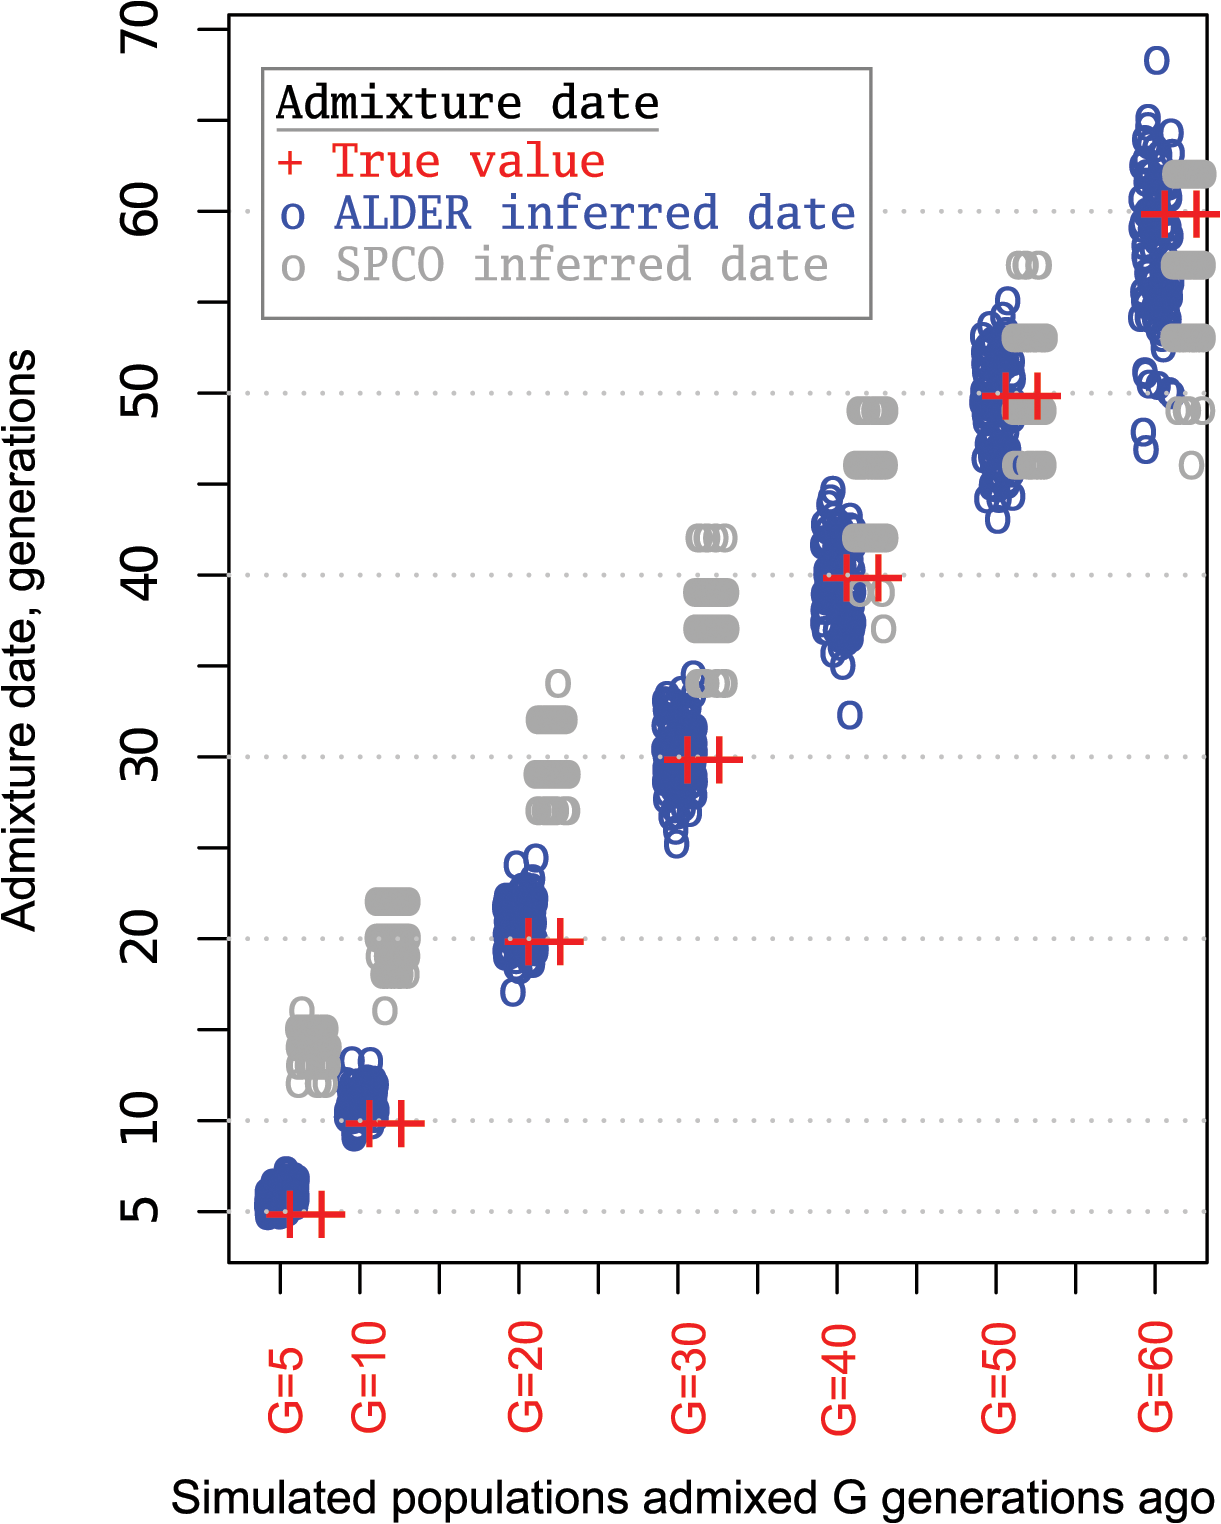 Admixture dates for simulated populations.